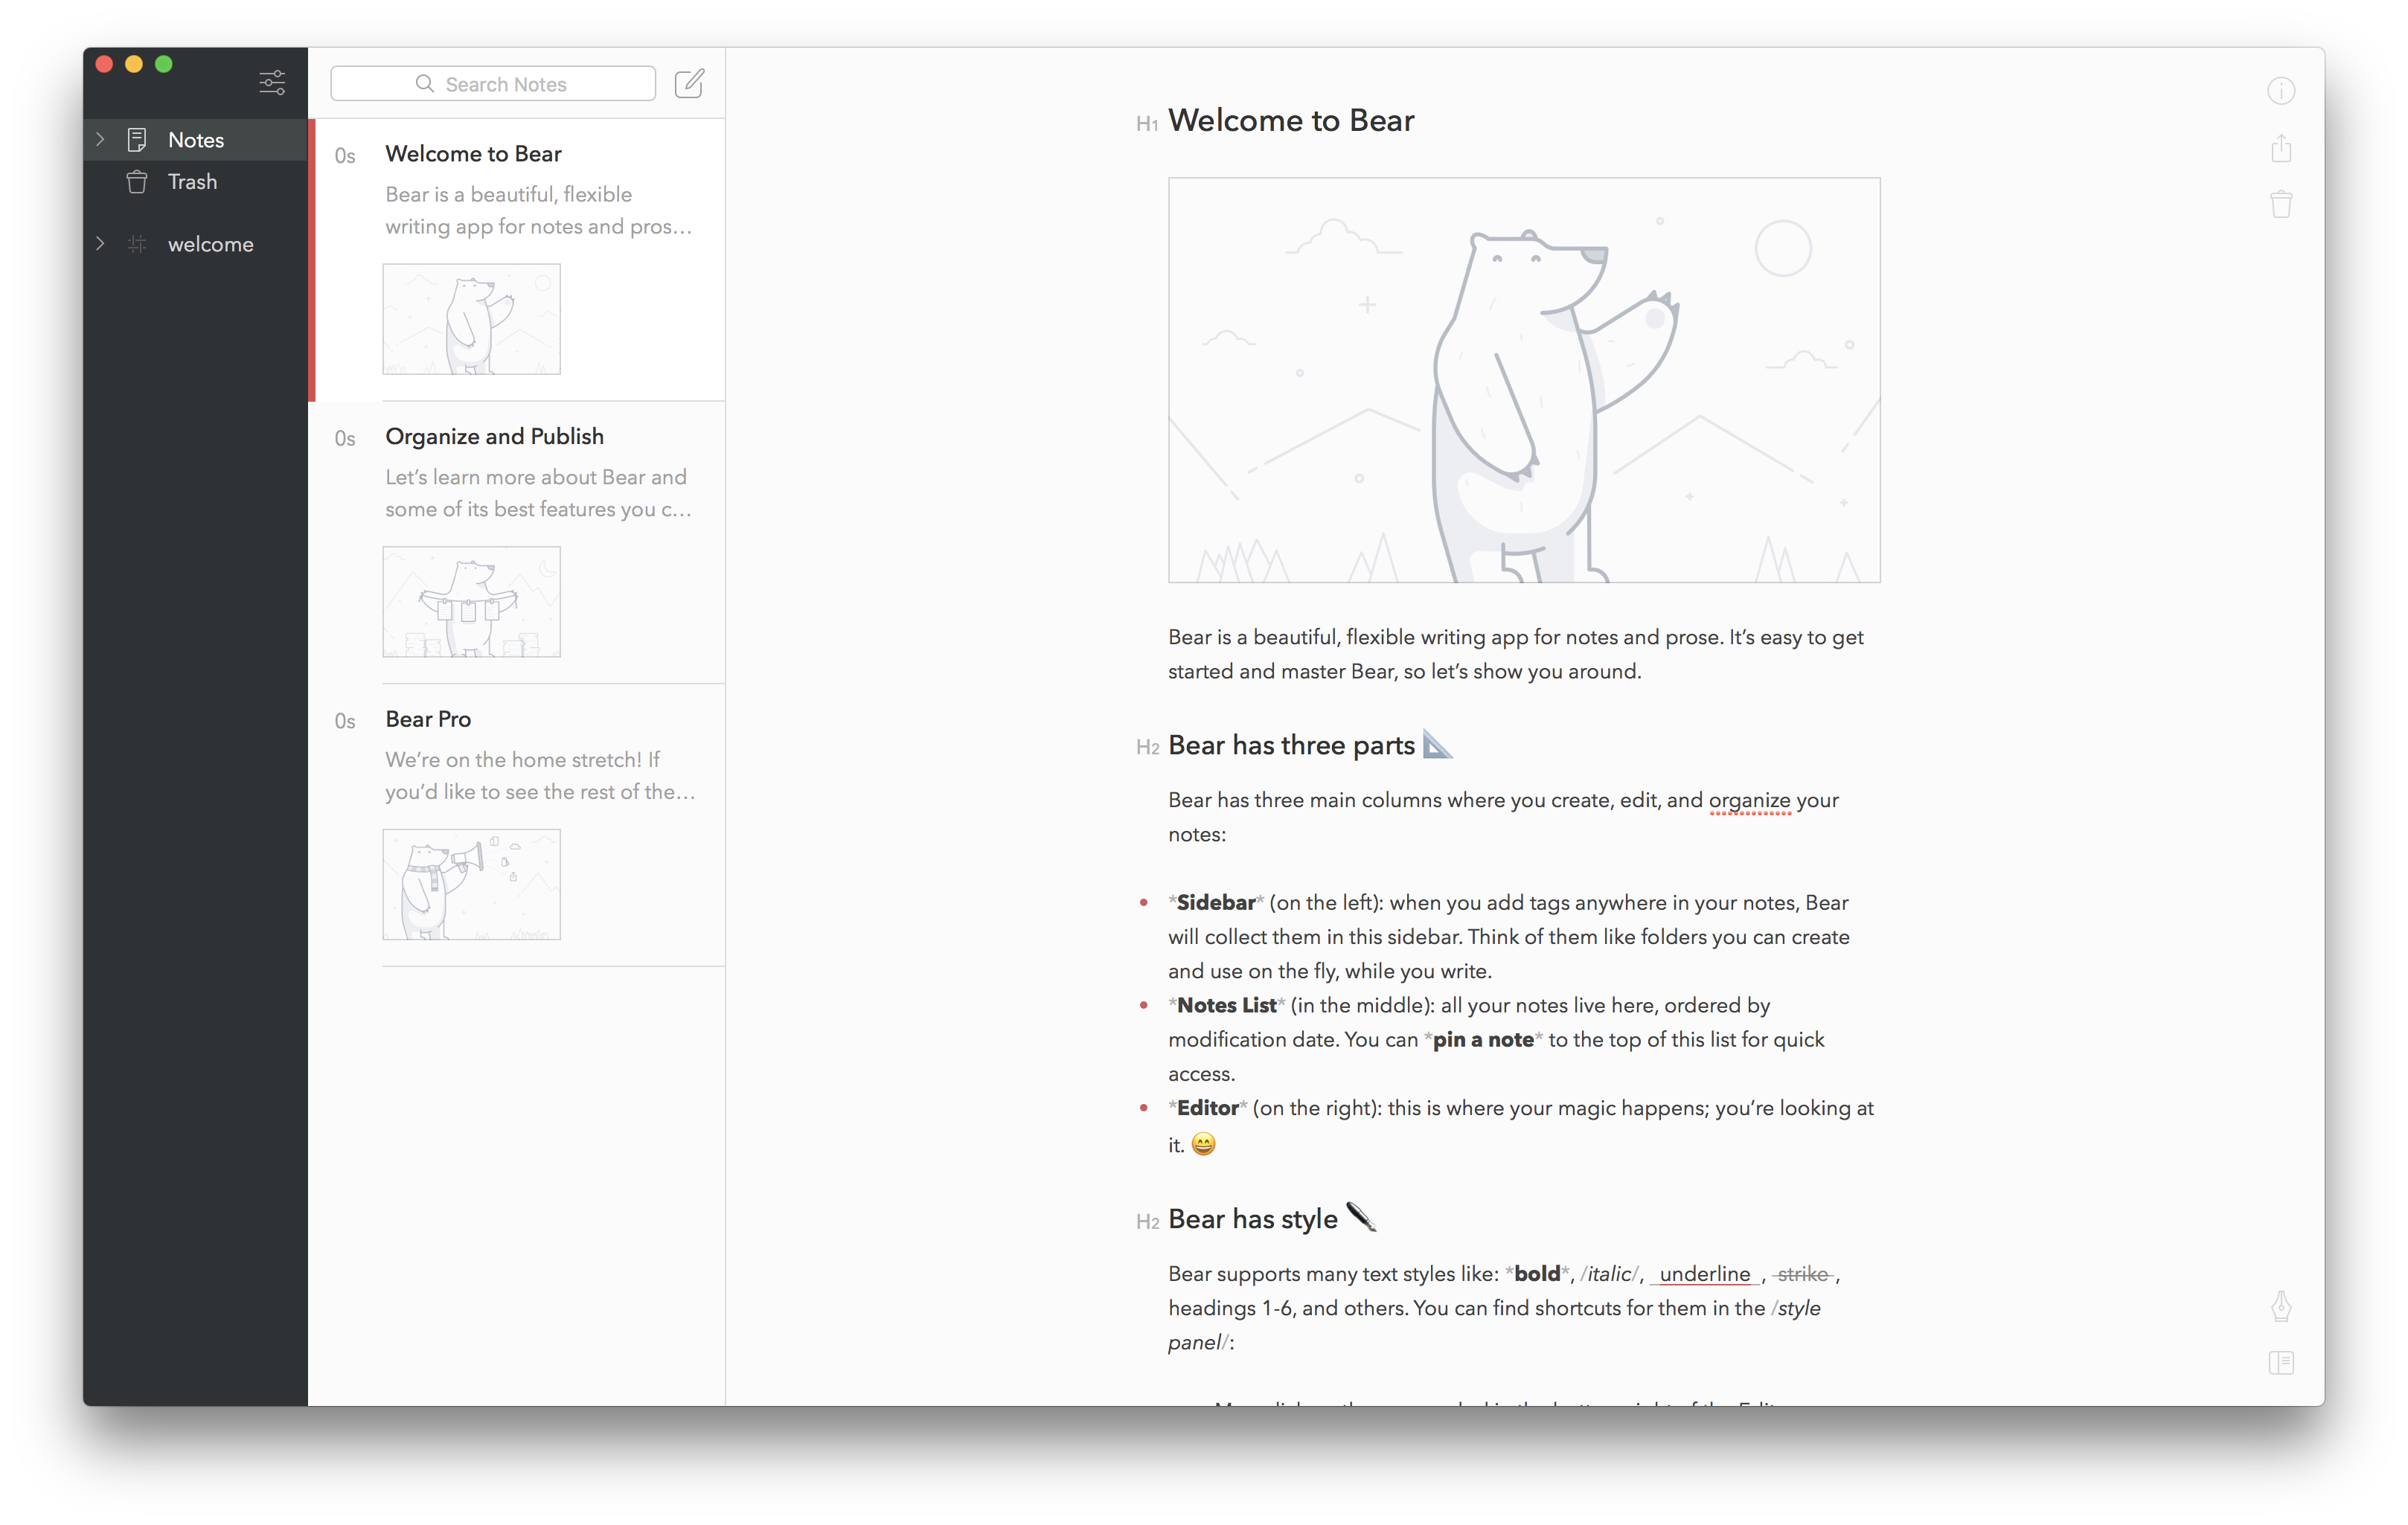 Bear's Self-Paced Onboarding